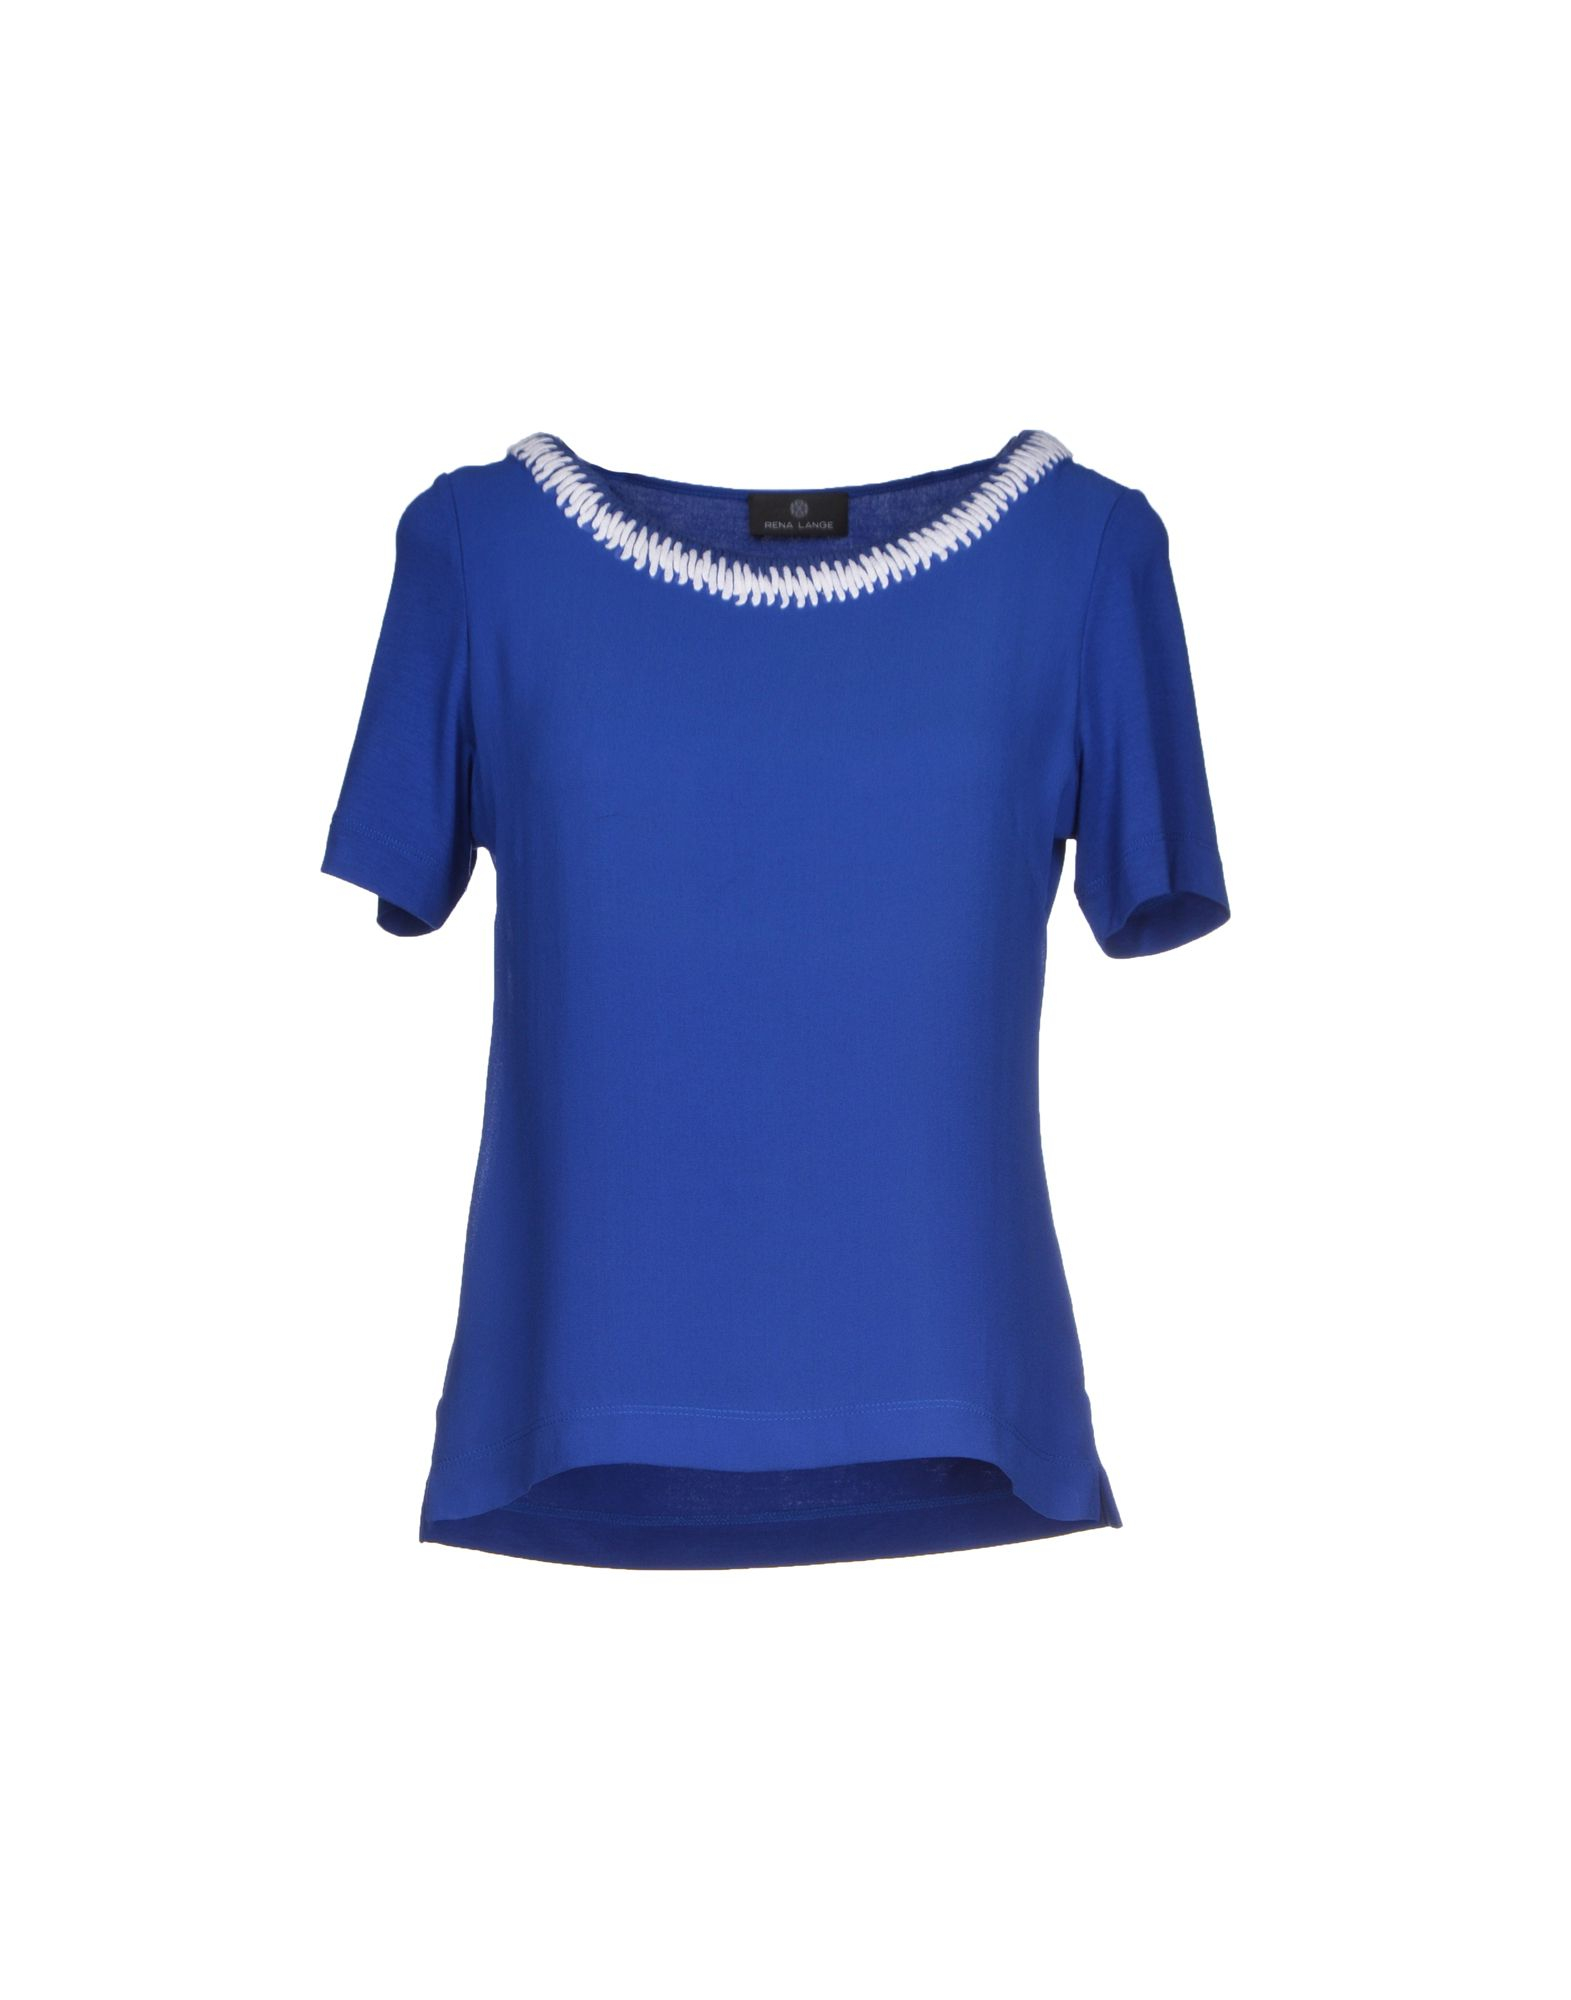 rena lange t shirt in blue bright blue save 81 lyst. Black Bedroom Furniture Sets. Home Design Ideas